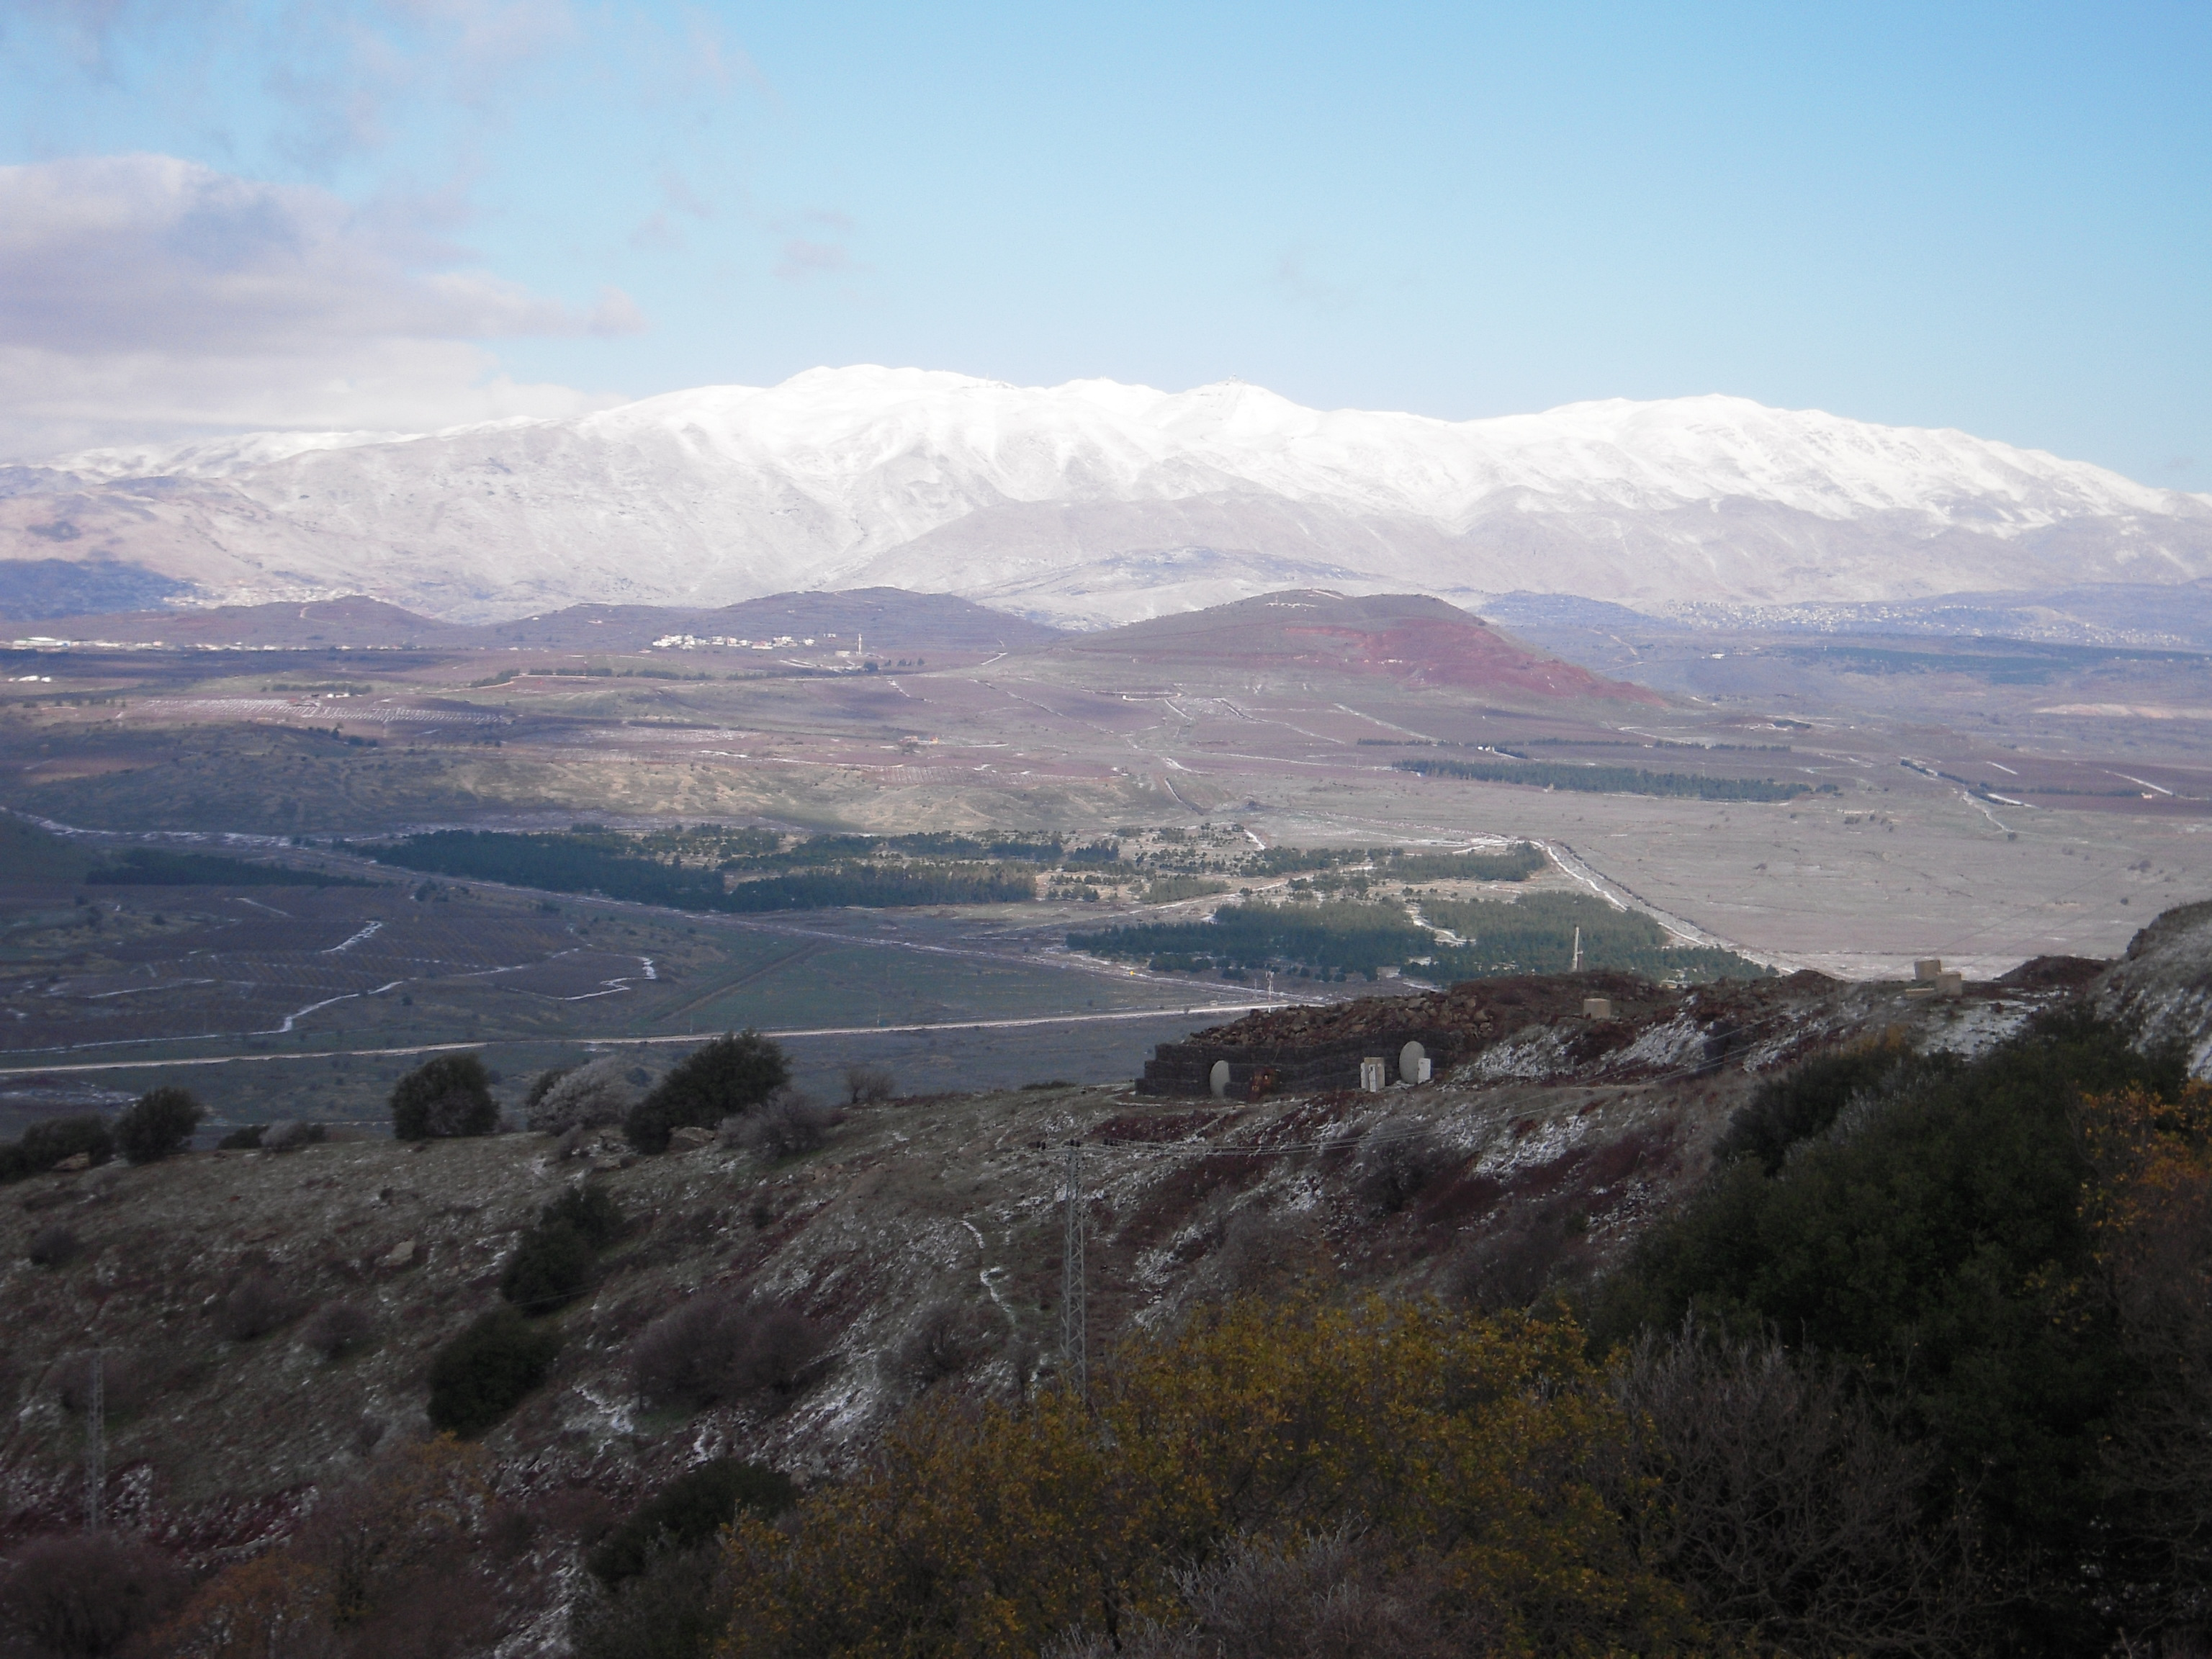 mount hermon dating Get new hermon mountain info, including elevation, opening & closing dates,   new hermon mountain offers ski and snowboard lessons, rental equipment and .